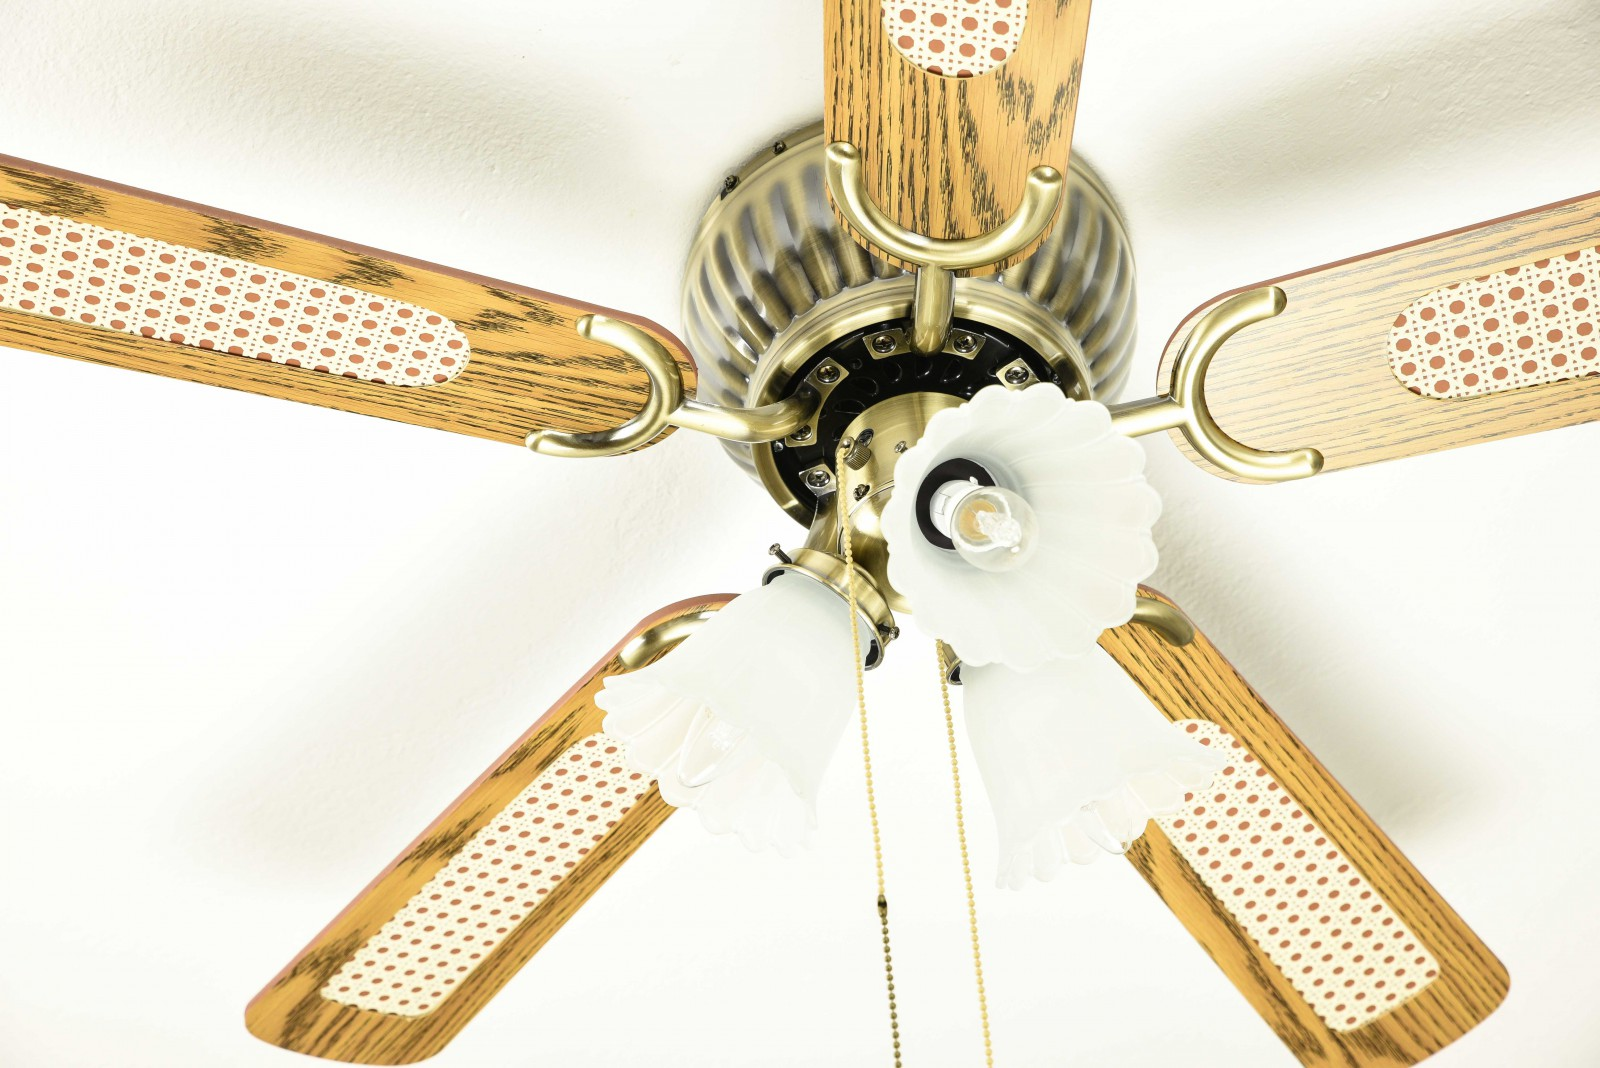 Kisa ceiling fan with pull cords